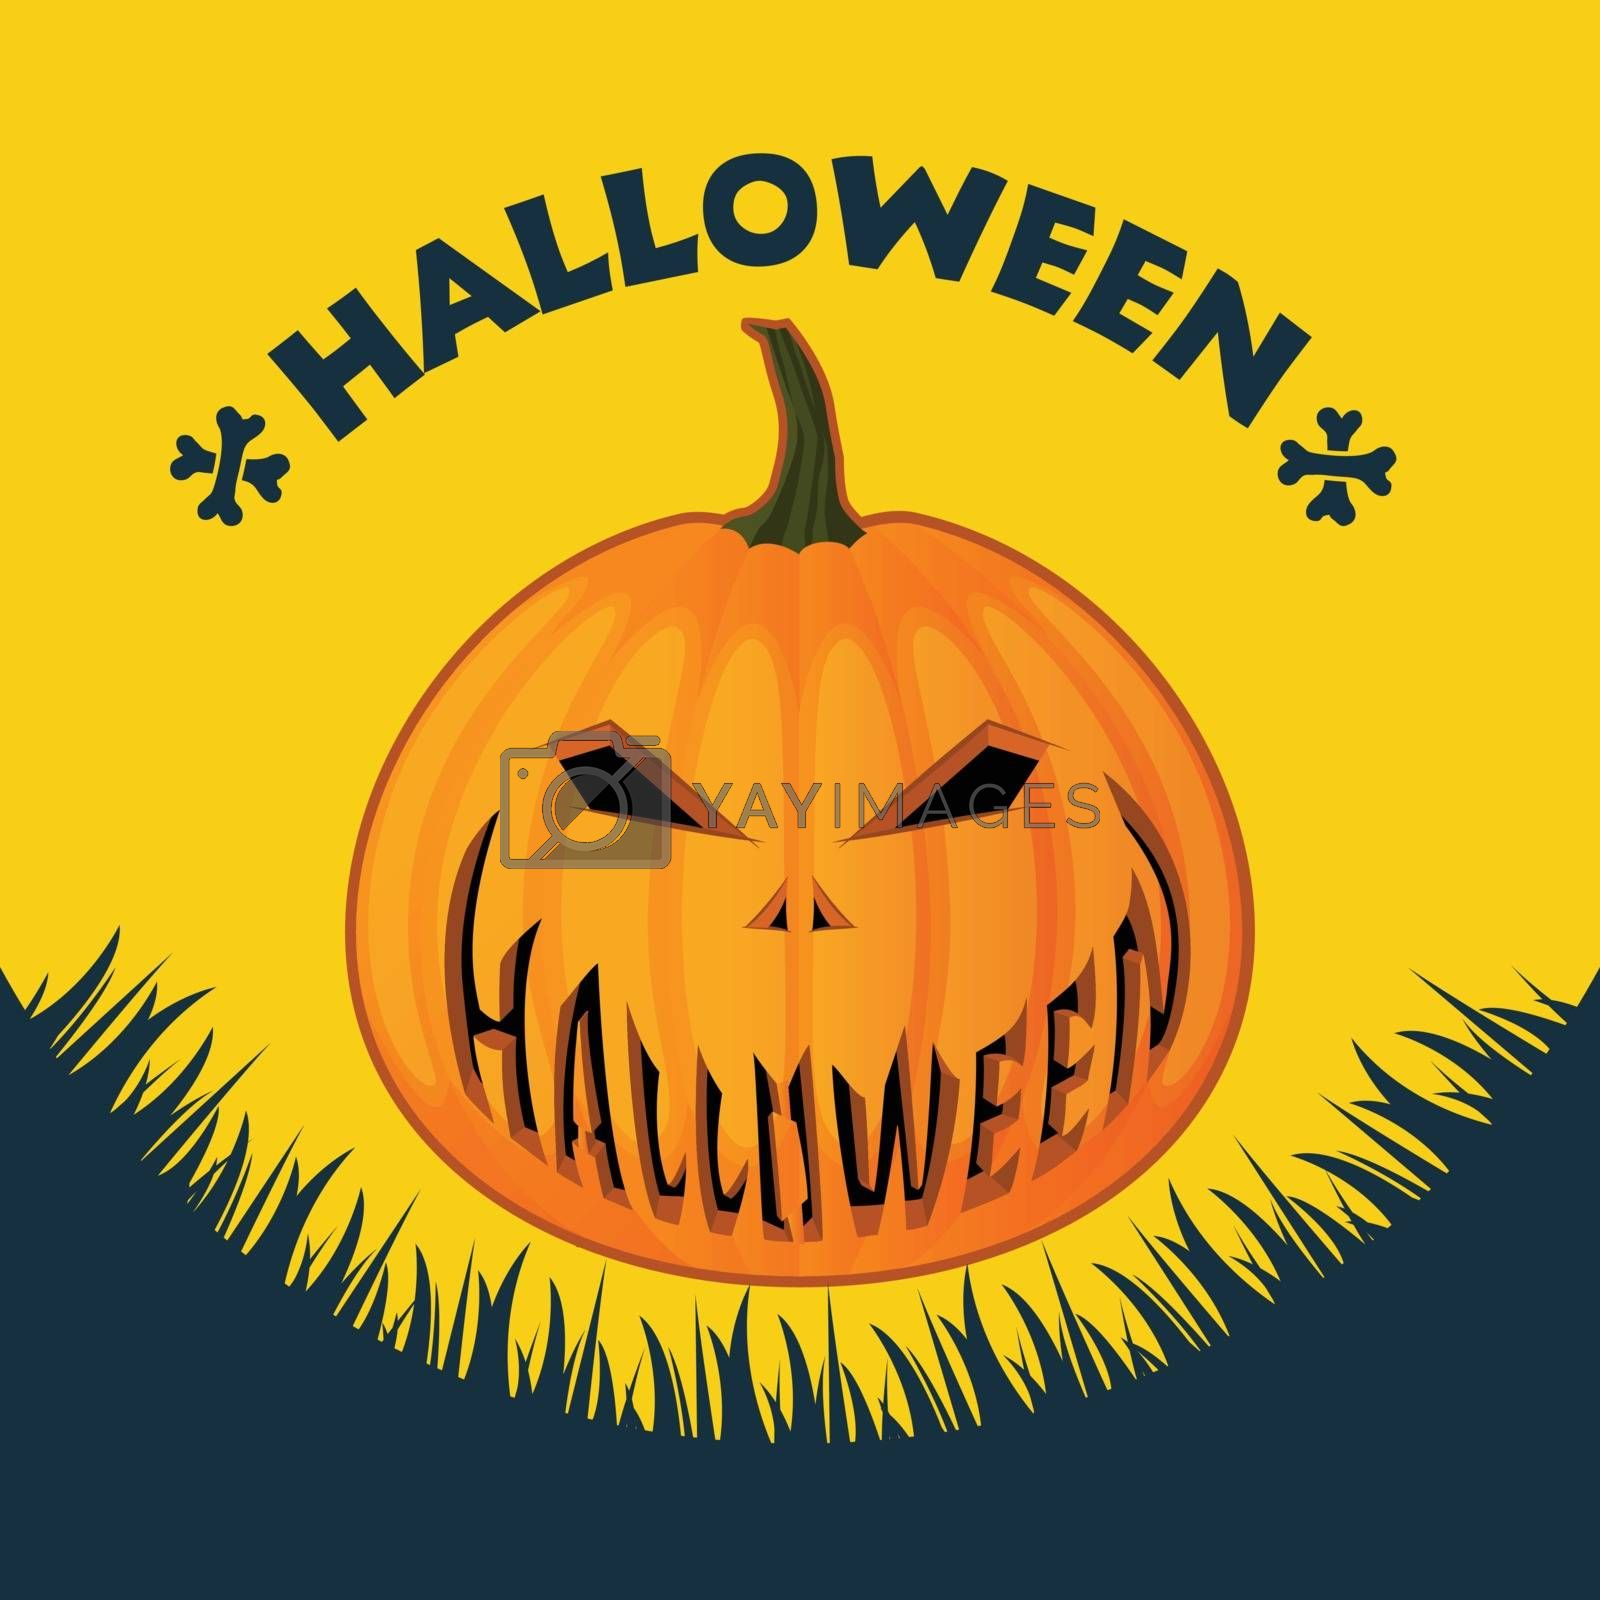 Vector illustration. Halloween poster on a yellow background. Lantern Jack carved a smile on a yellow background.